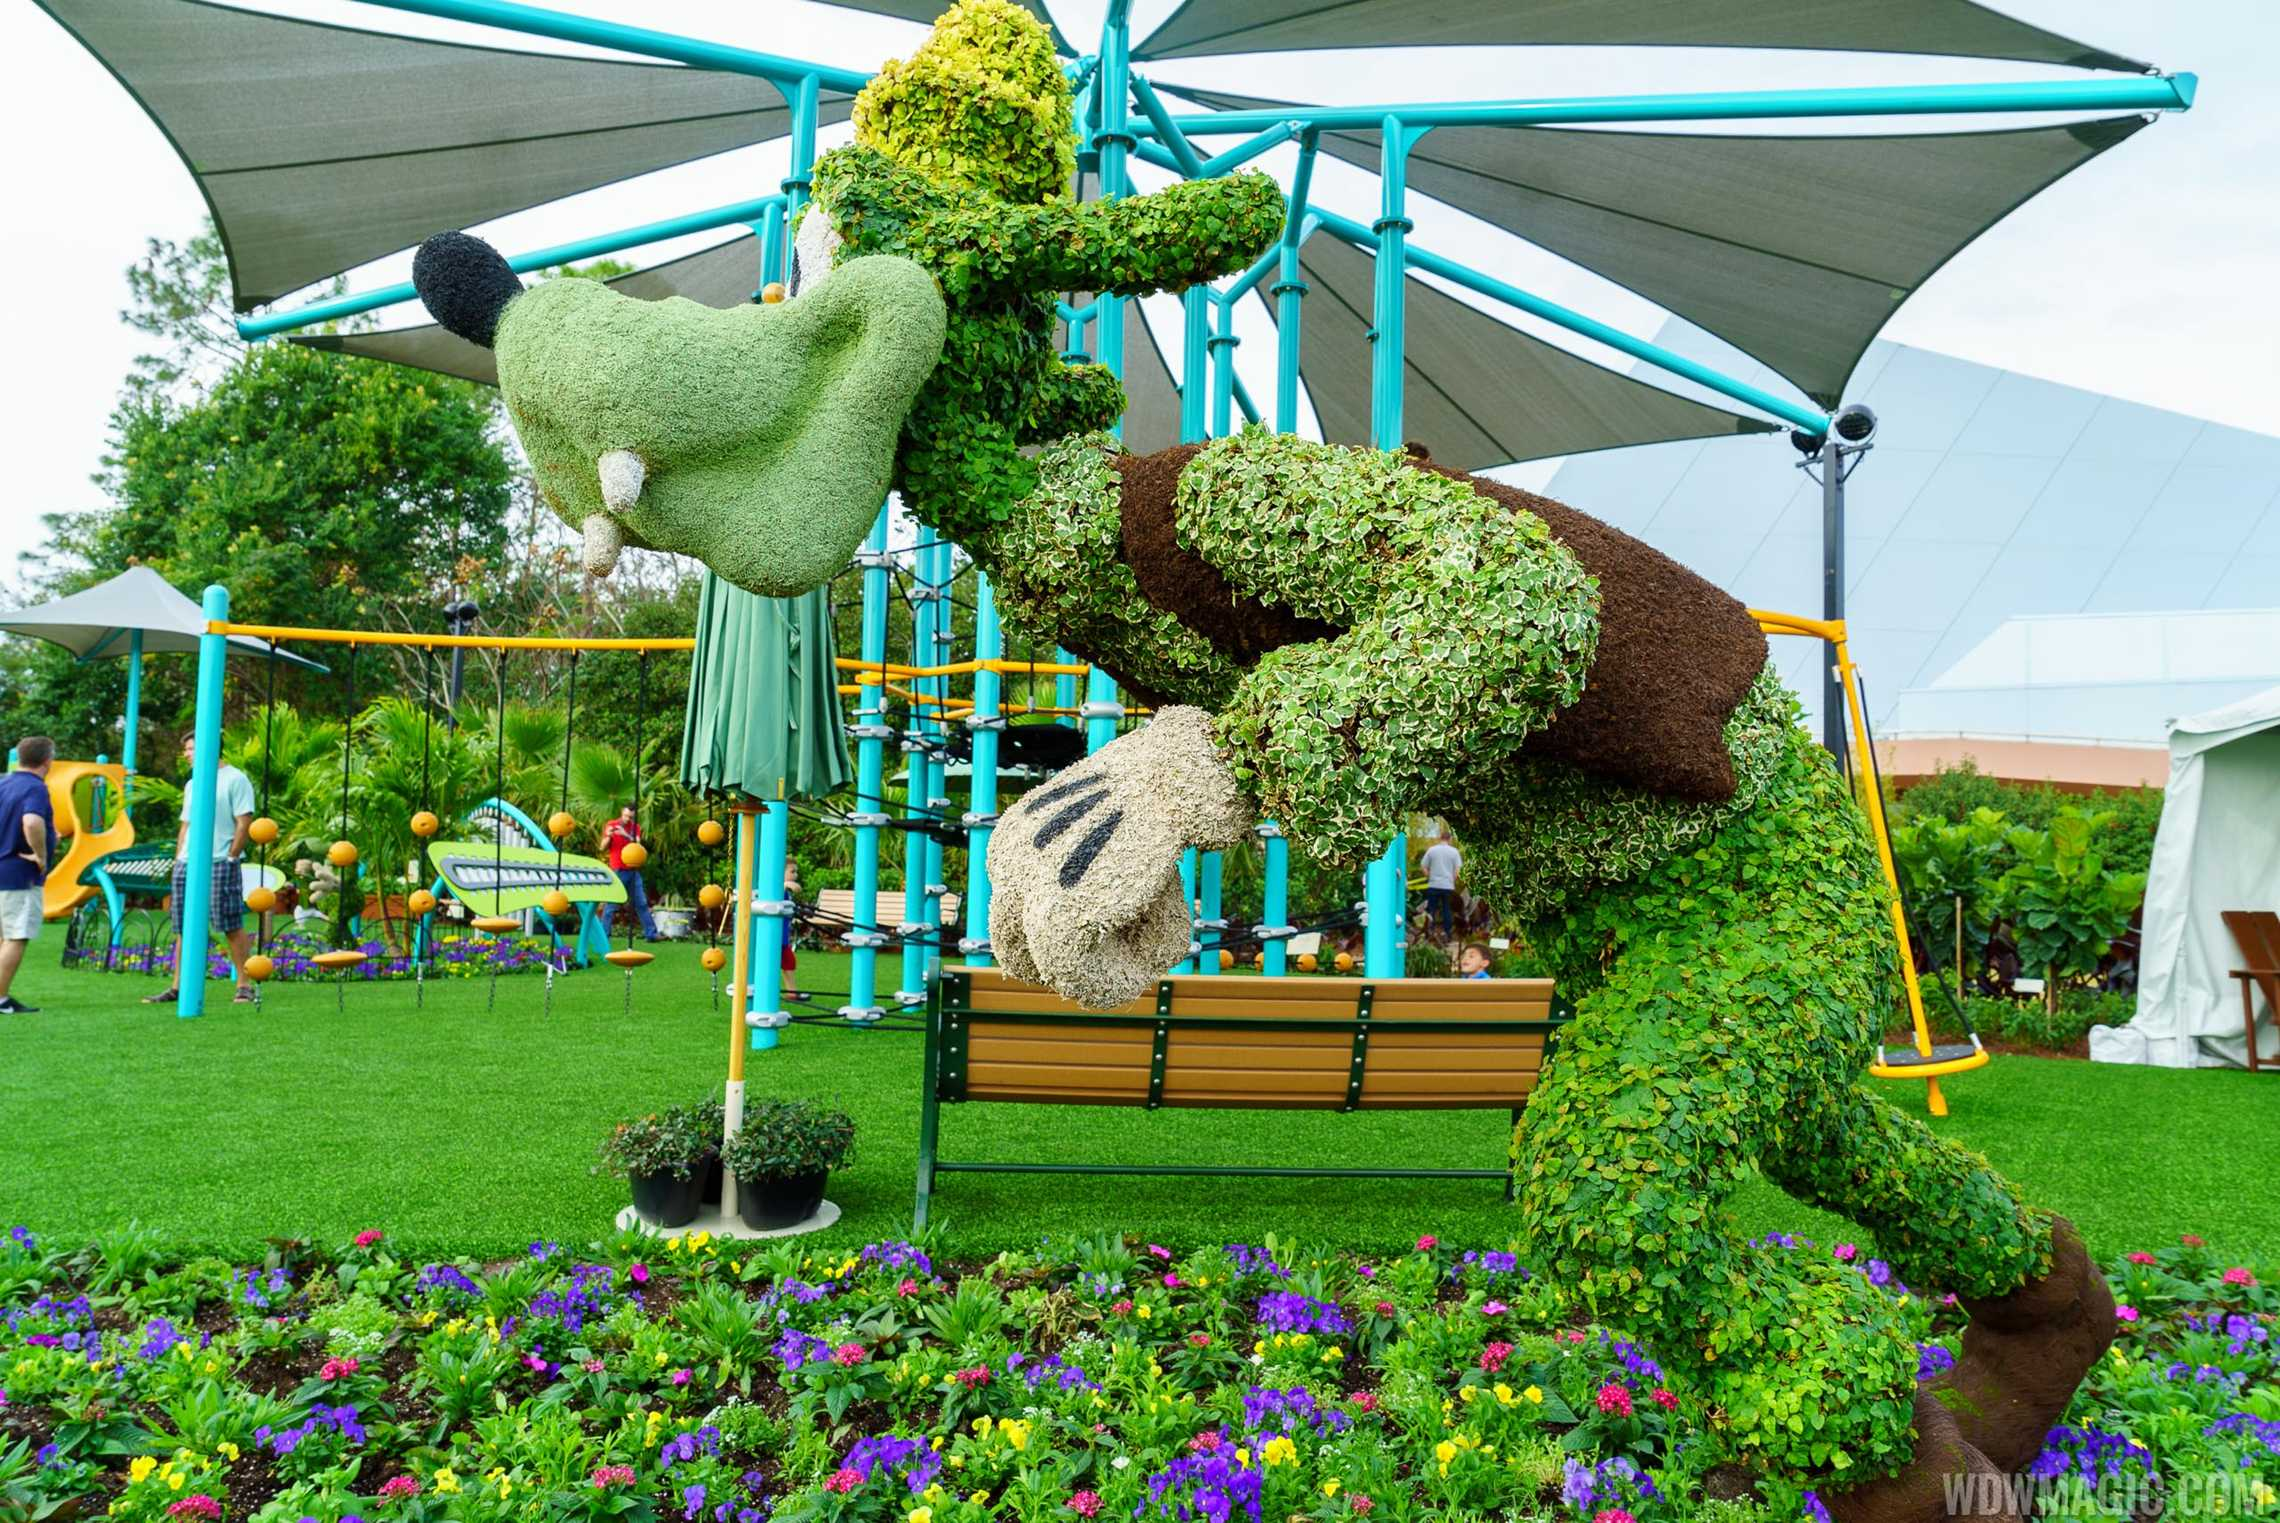 2016 Epcot International Flower And Garden Festival Topiary Tour Photo 31 Of 88